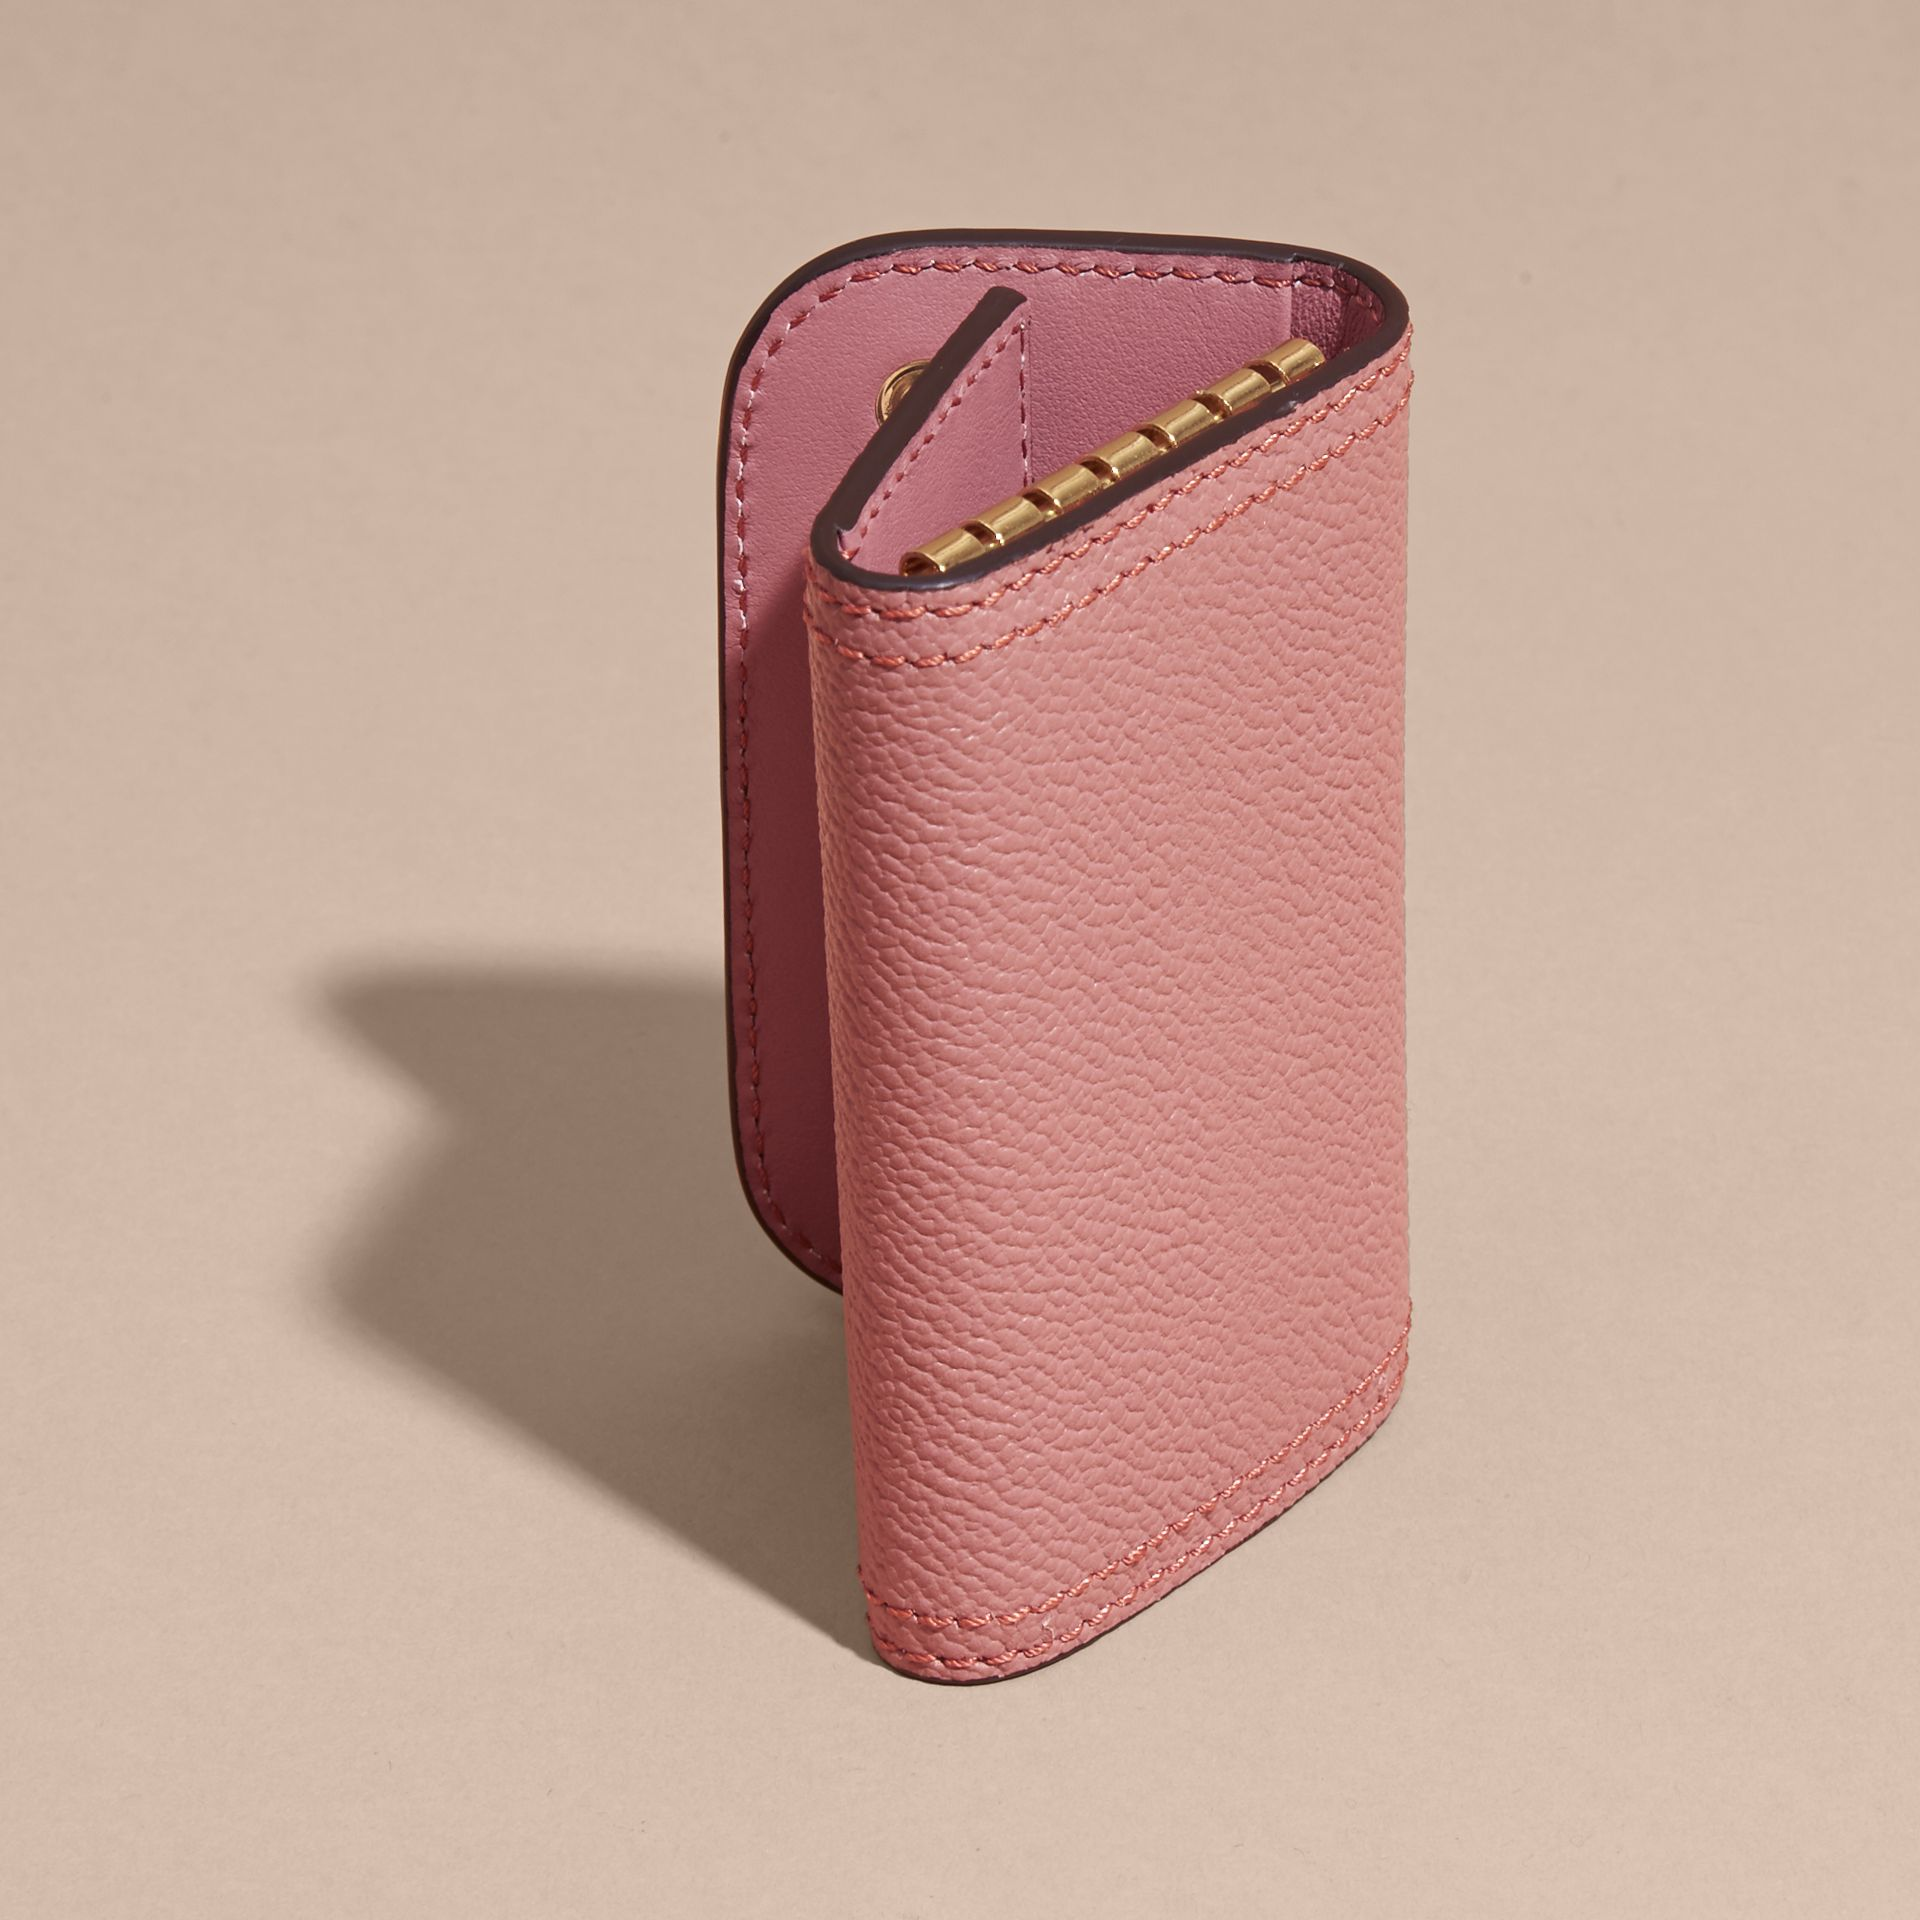 Grainy Leather Key Holder in Dusty Pink - Women | Burberry Canada - gallery image 4